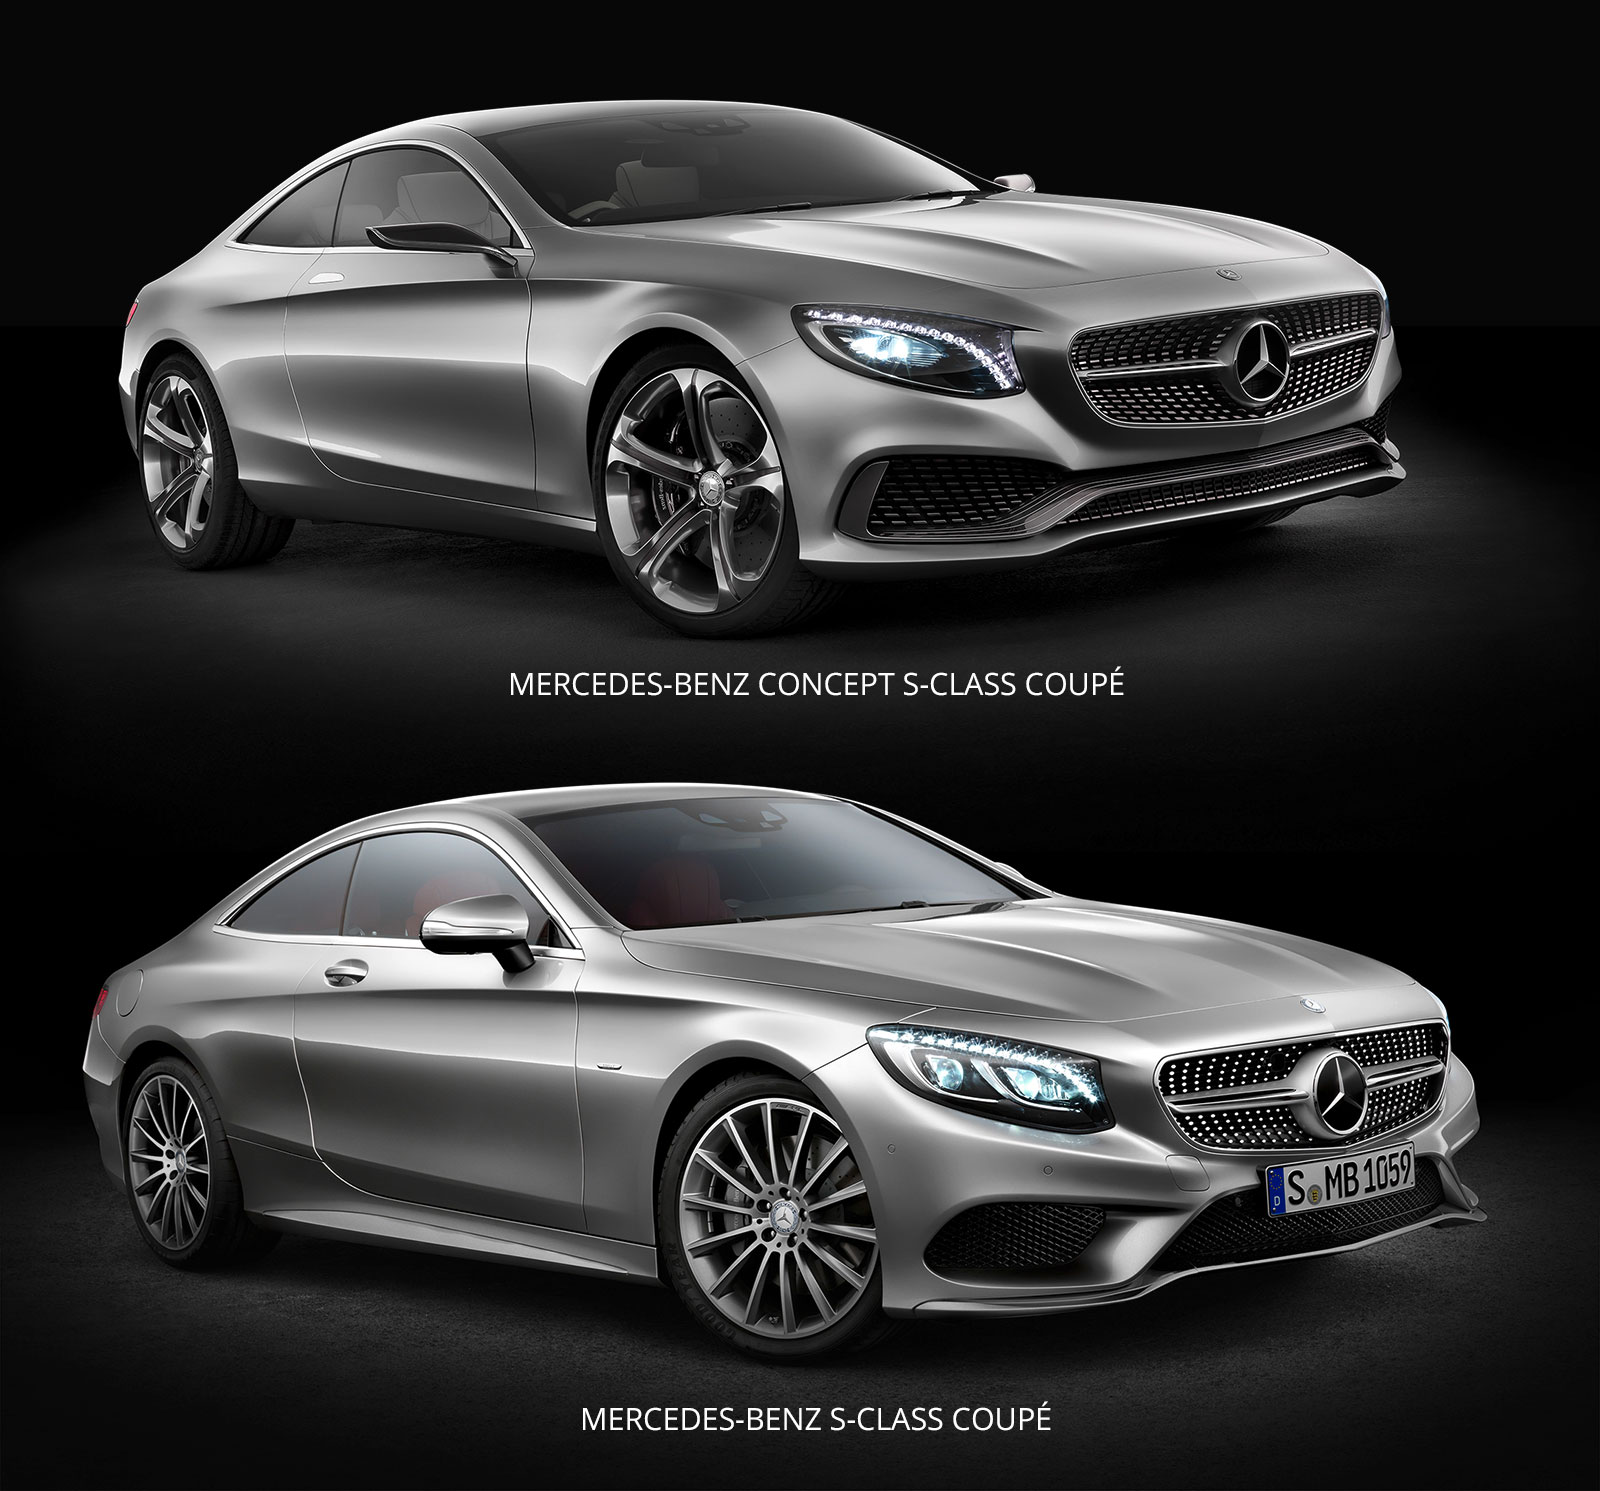 Mercedes Benz S Class Coupe Concept And Production